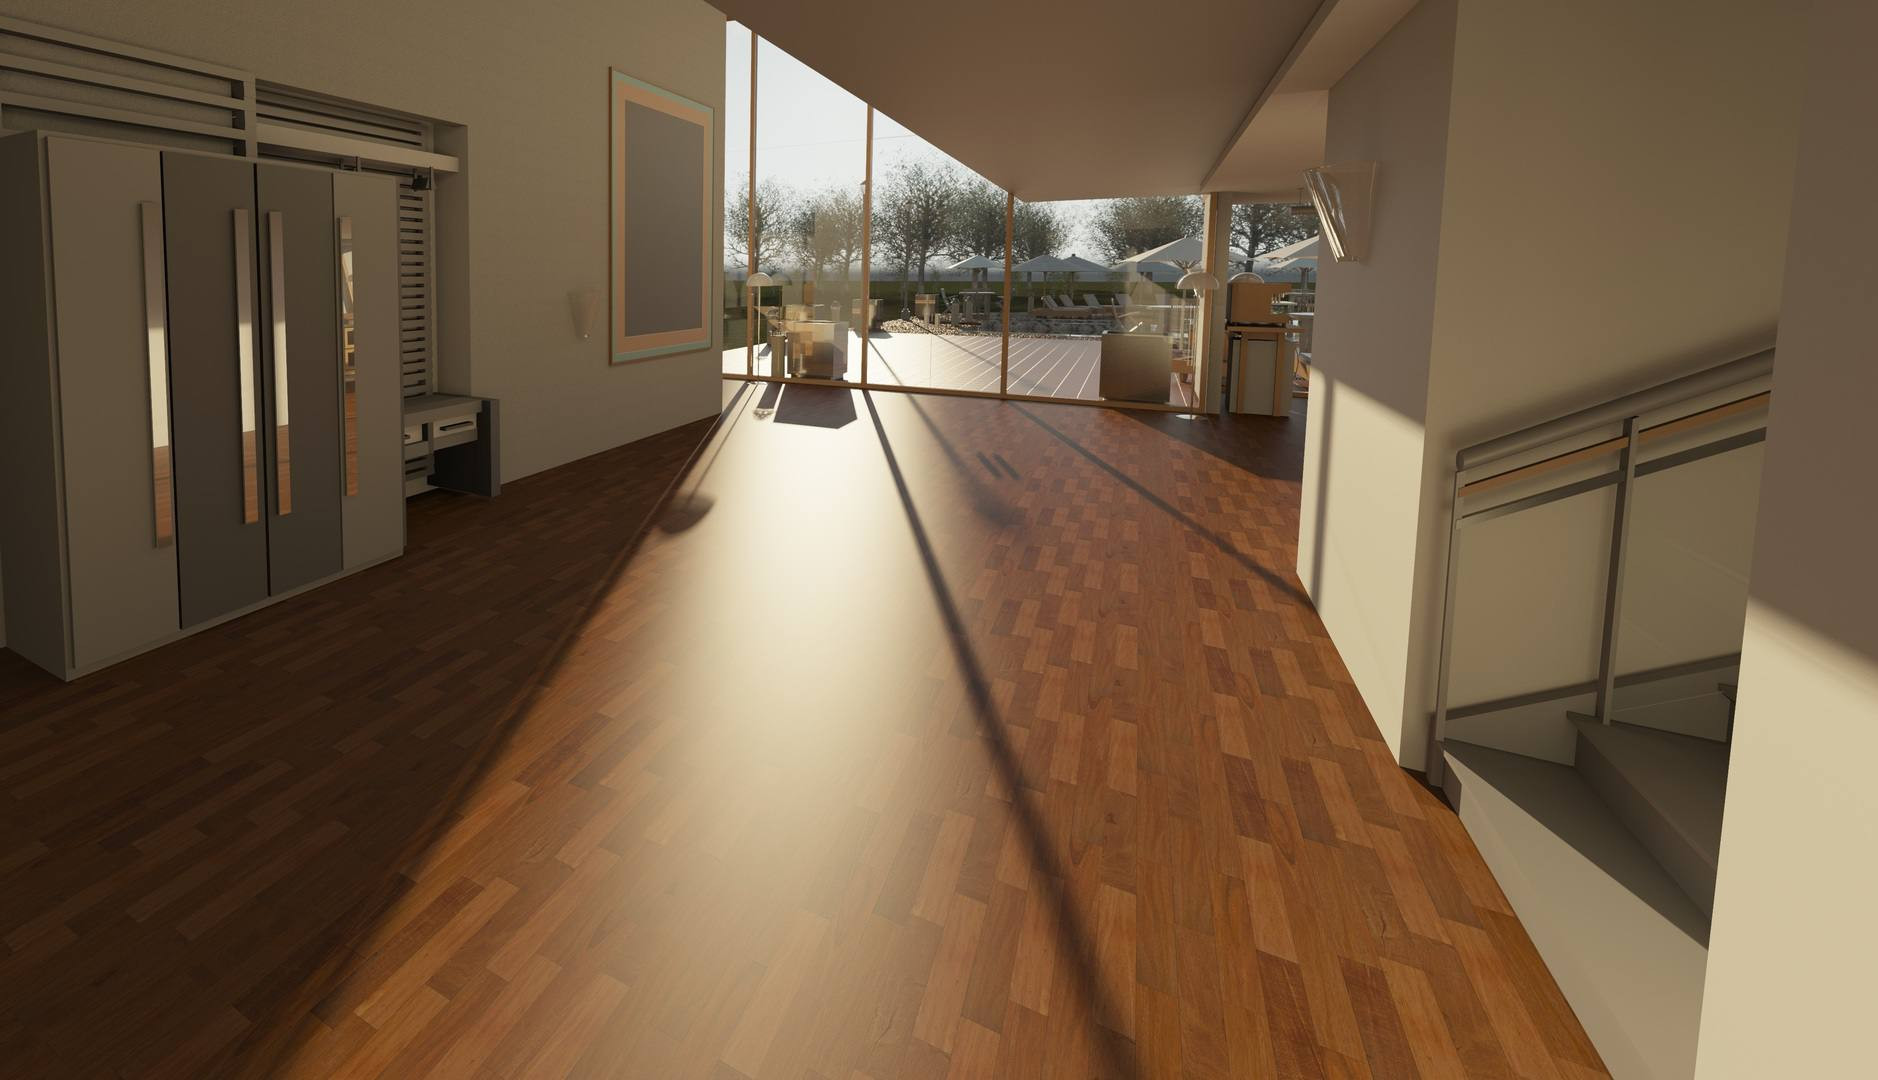 easy click engineered hardwood flooring of common flooring types currently used in renovation and building in architecture wood house floor interior window 917178 pxhere com 5ba27a2cc9e77c00503b27b9